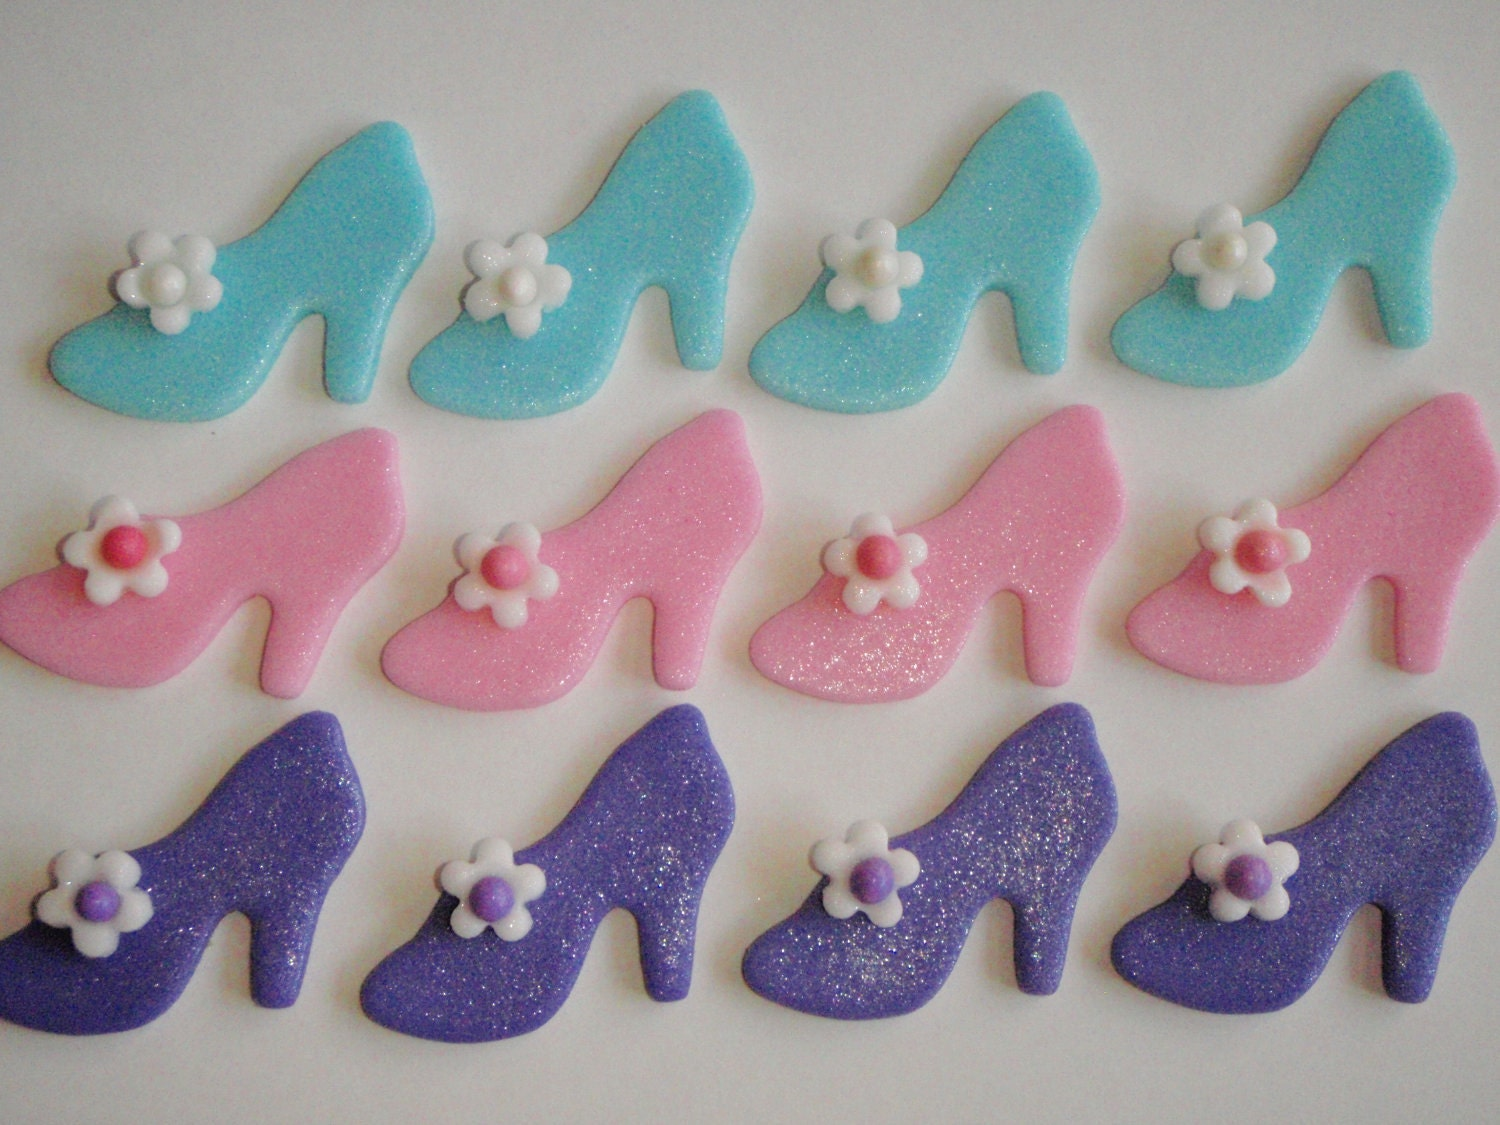 Cake Toppers On Fondant : Fondant Shoe Cupcake Topper or Cake Decorations Cinderella